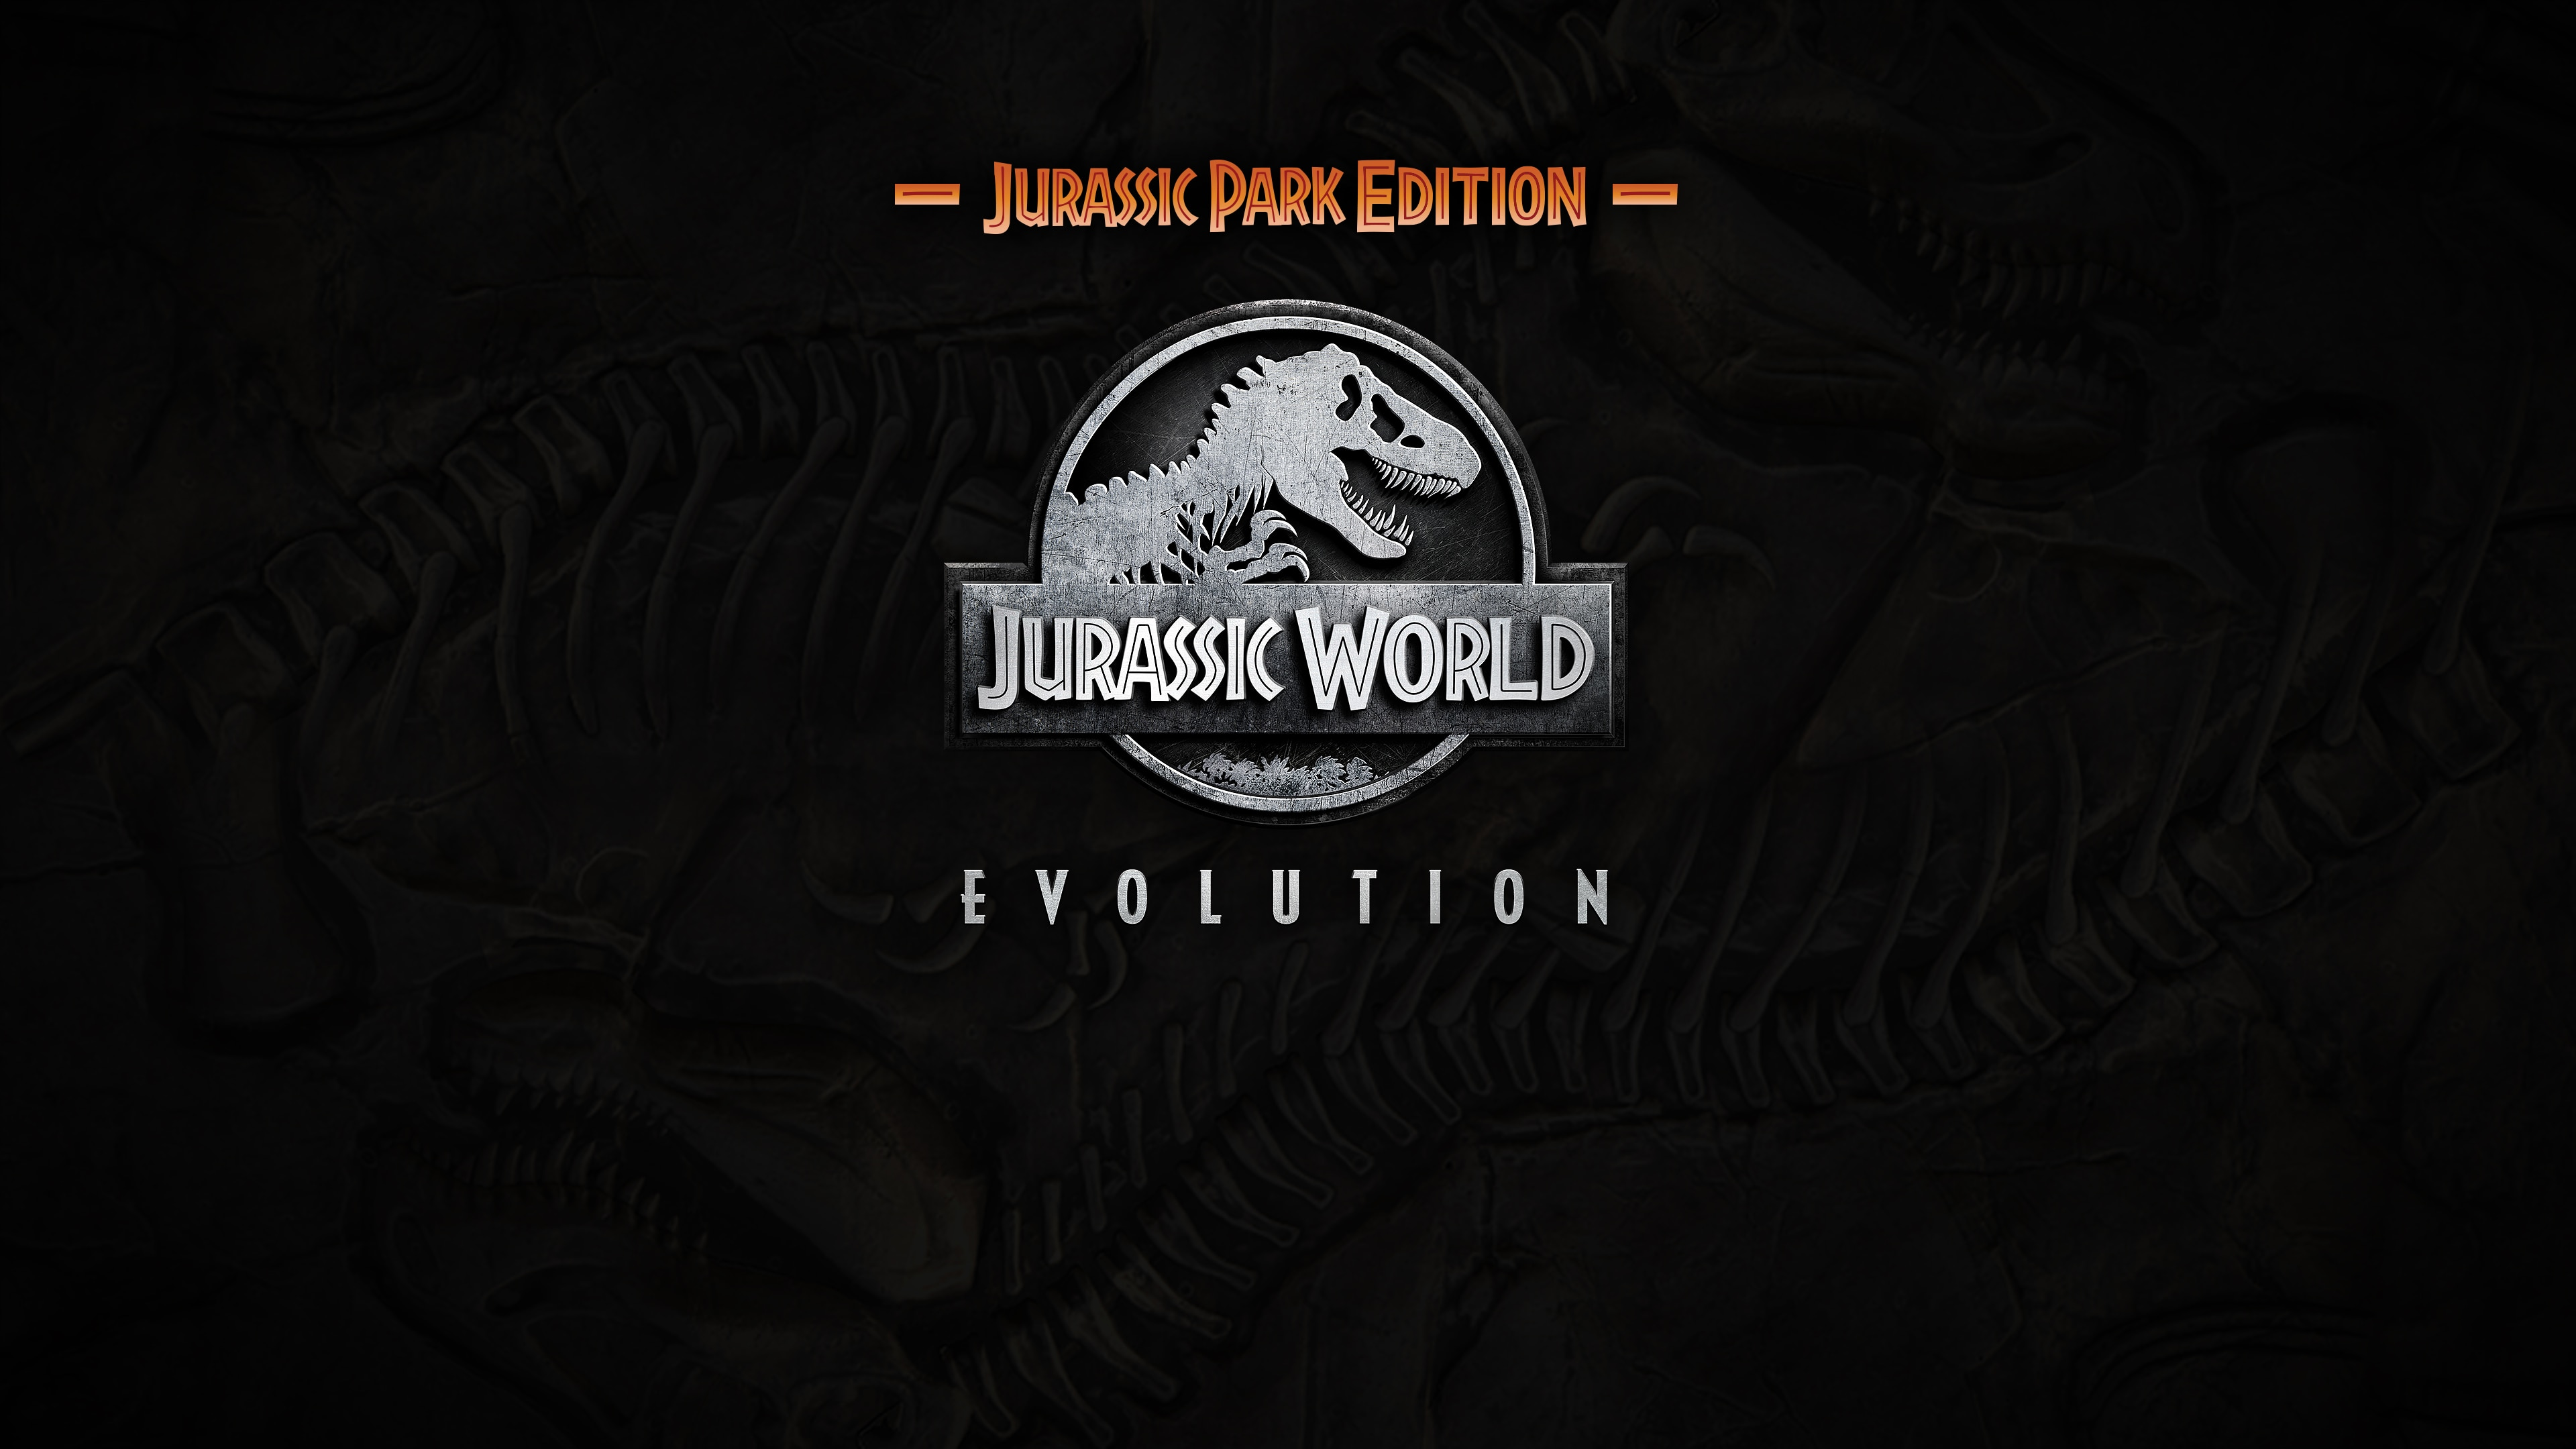 Jurassic World Evolution: Edición Jurassic Park